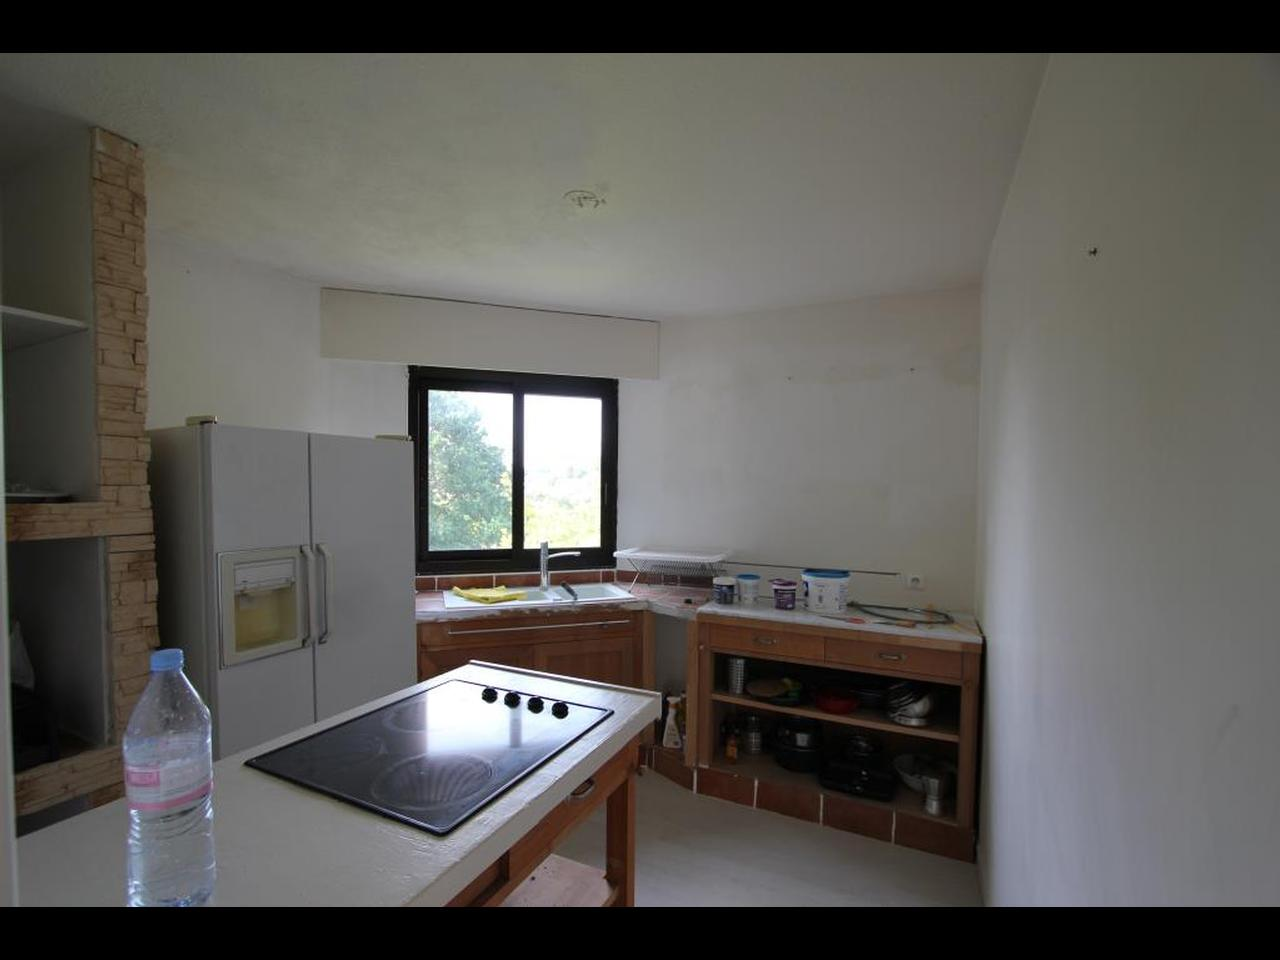 appartement 595 000 euros hadriana lamperti 005